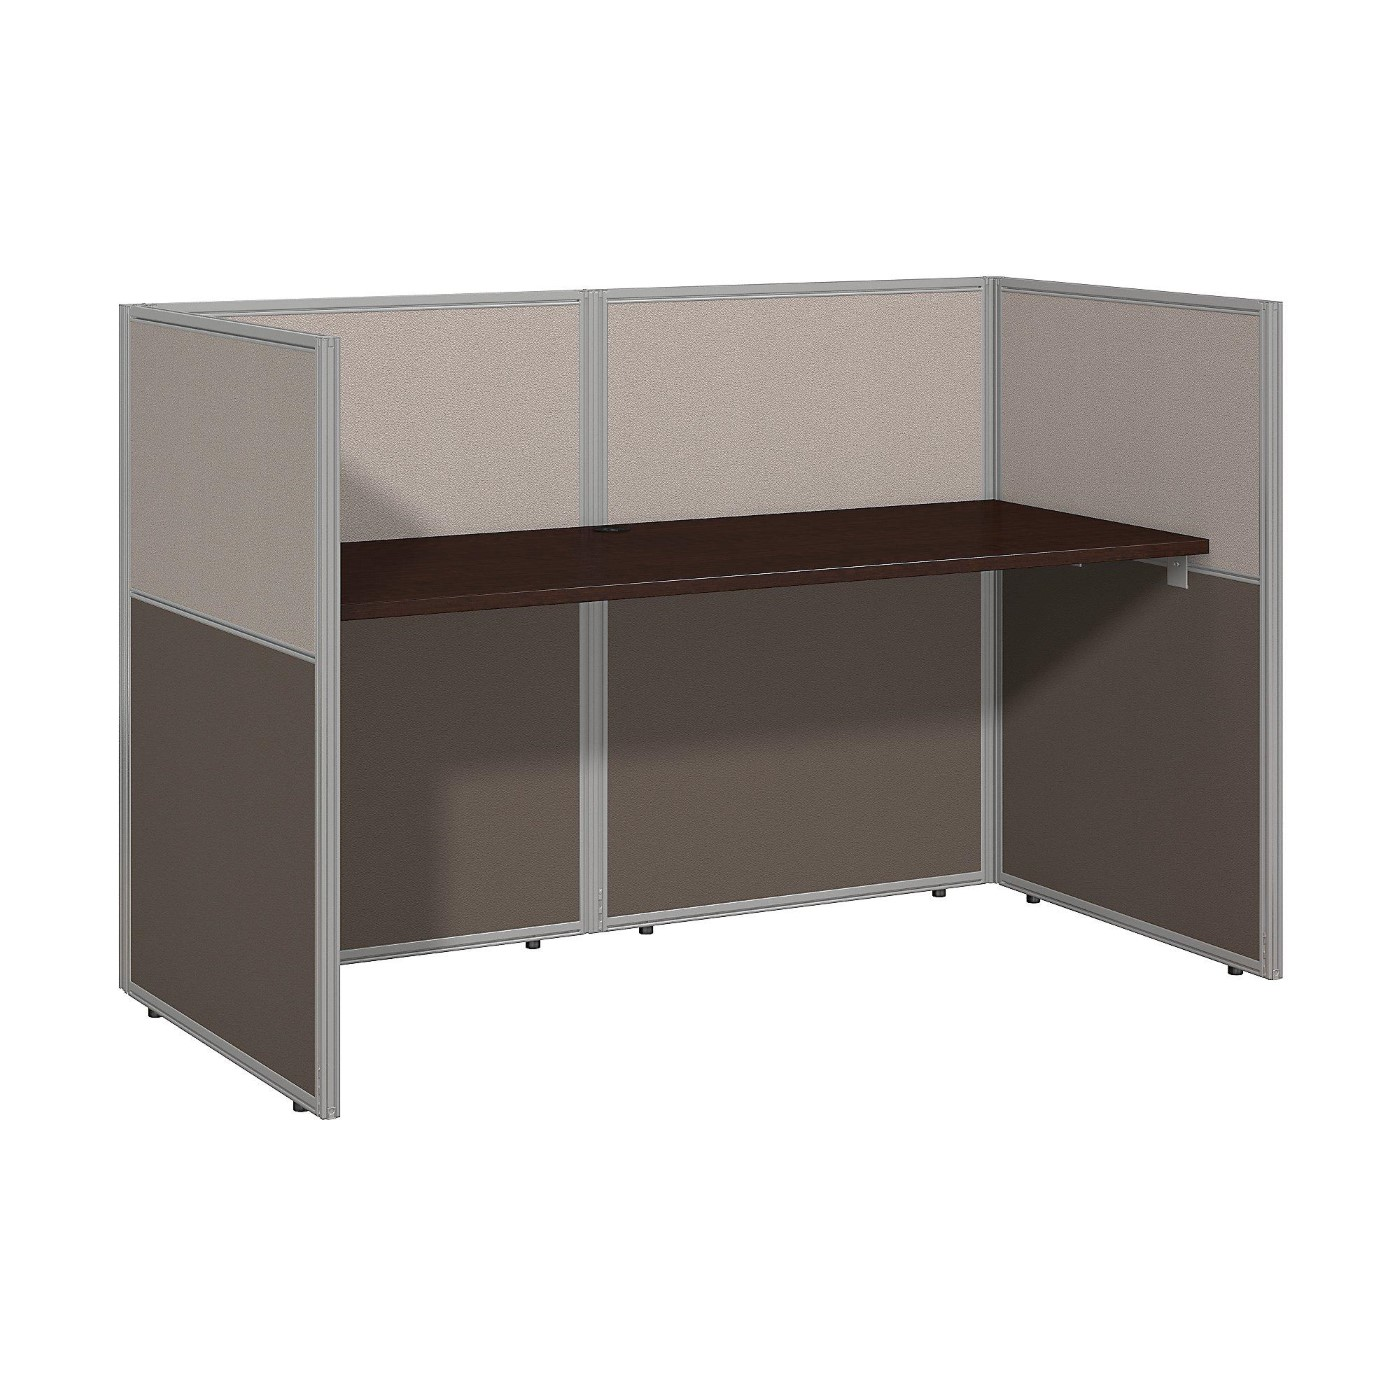 <font color=#c60><b>BUSH BUSINESS FURNITURE EASY OFFICE 60W STRAIGHT DESK CLOSED OFFICE. FREE SHIPPING</font></b>